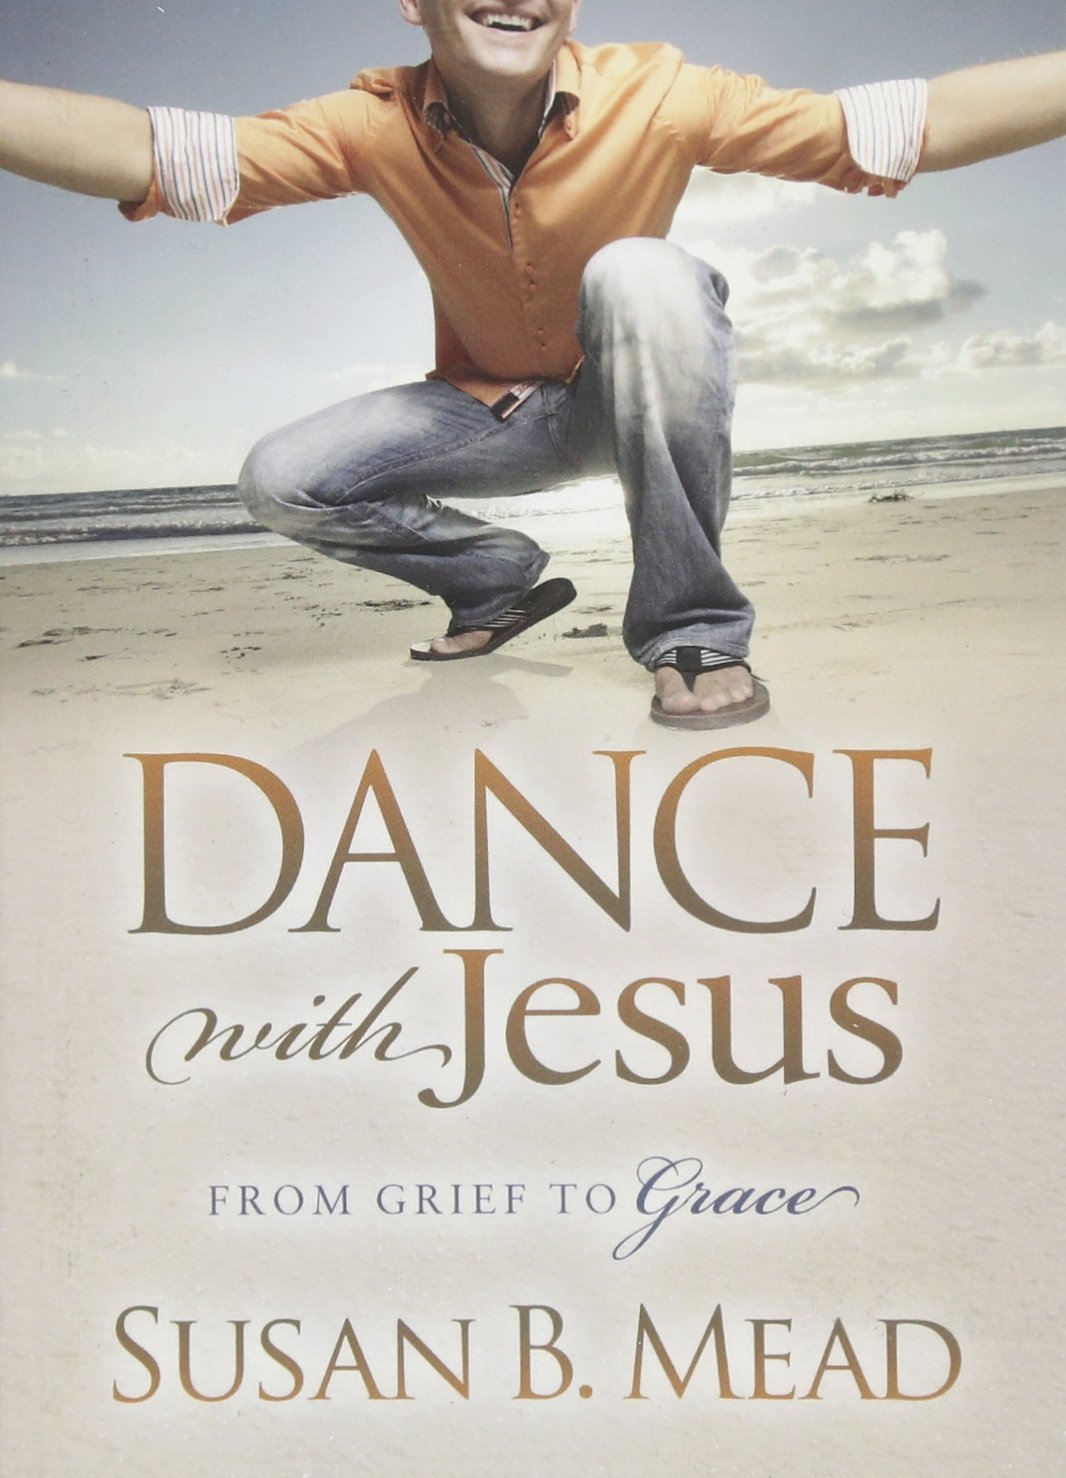 Dance With Jesus: From Grief to Grace (Morgan James Faith) ebook